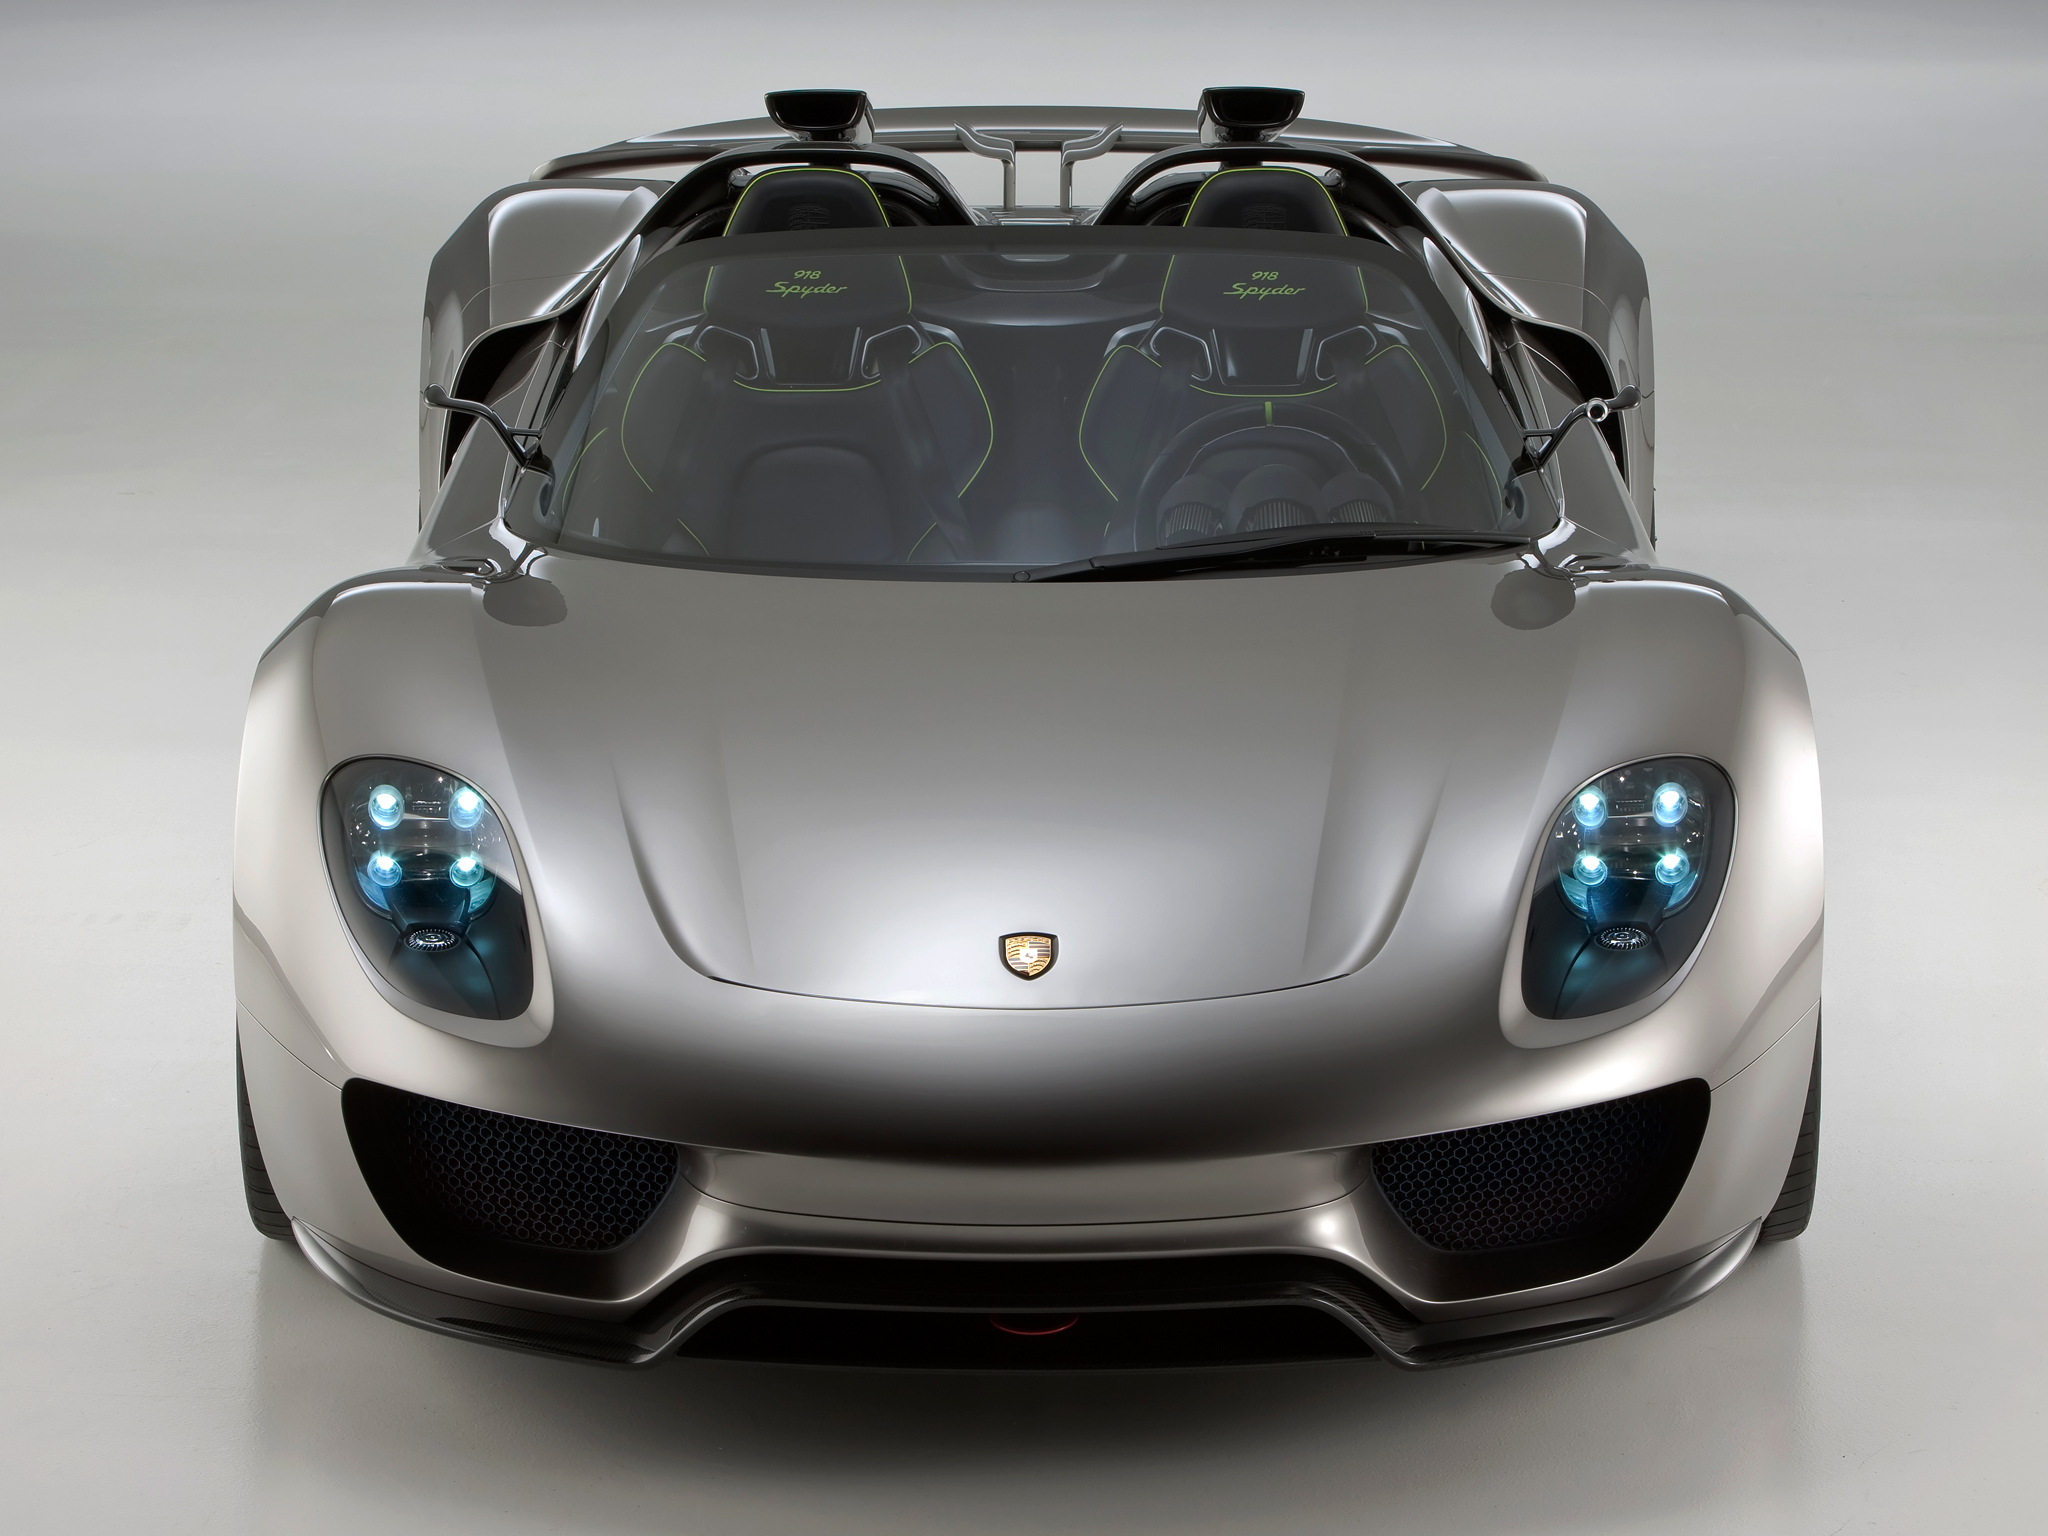 2010 porsche 918 spyder concept supercar supercars gd wallpaper 2048x1536 131598 wallpaperup. Black Bedroom Furniture Sets. Home Design Ideas